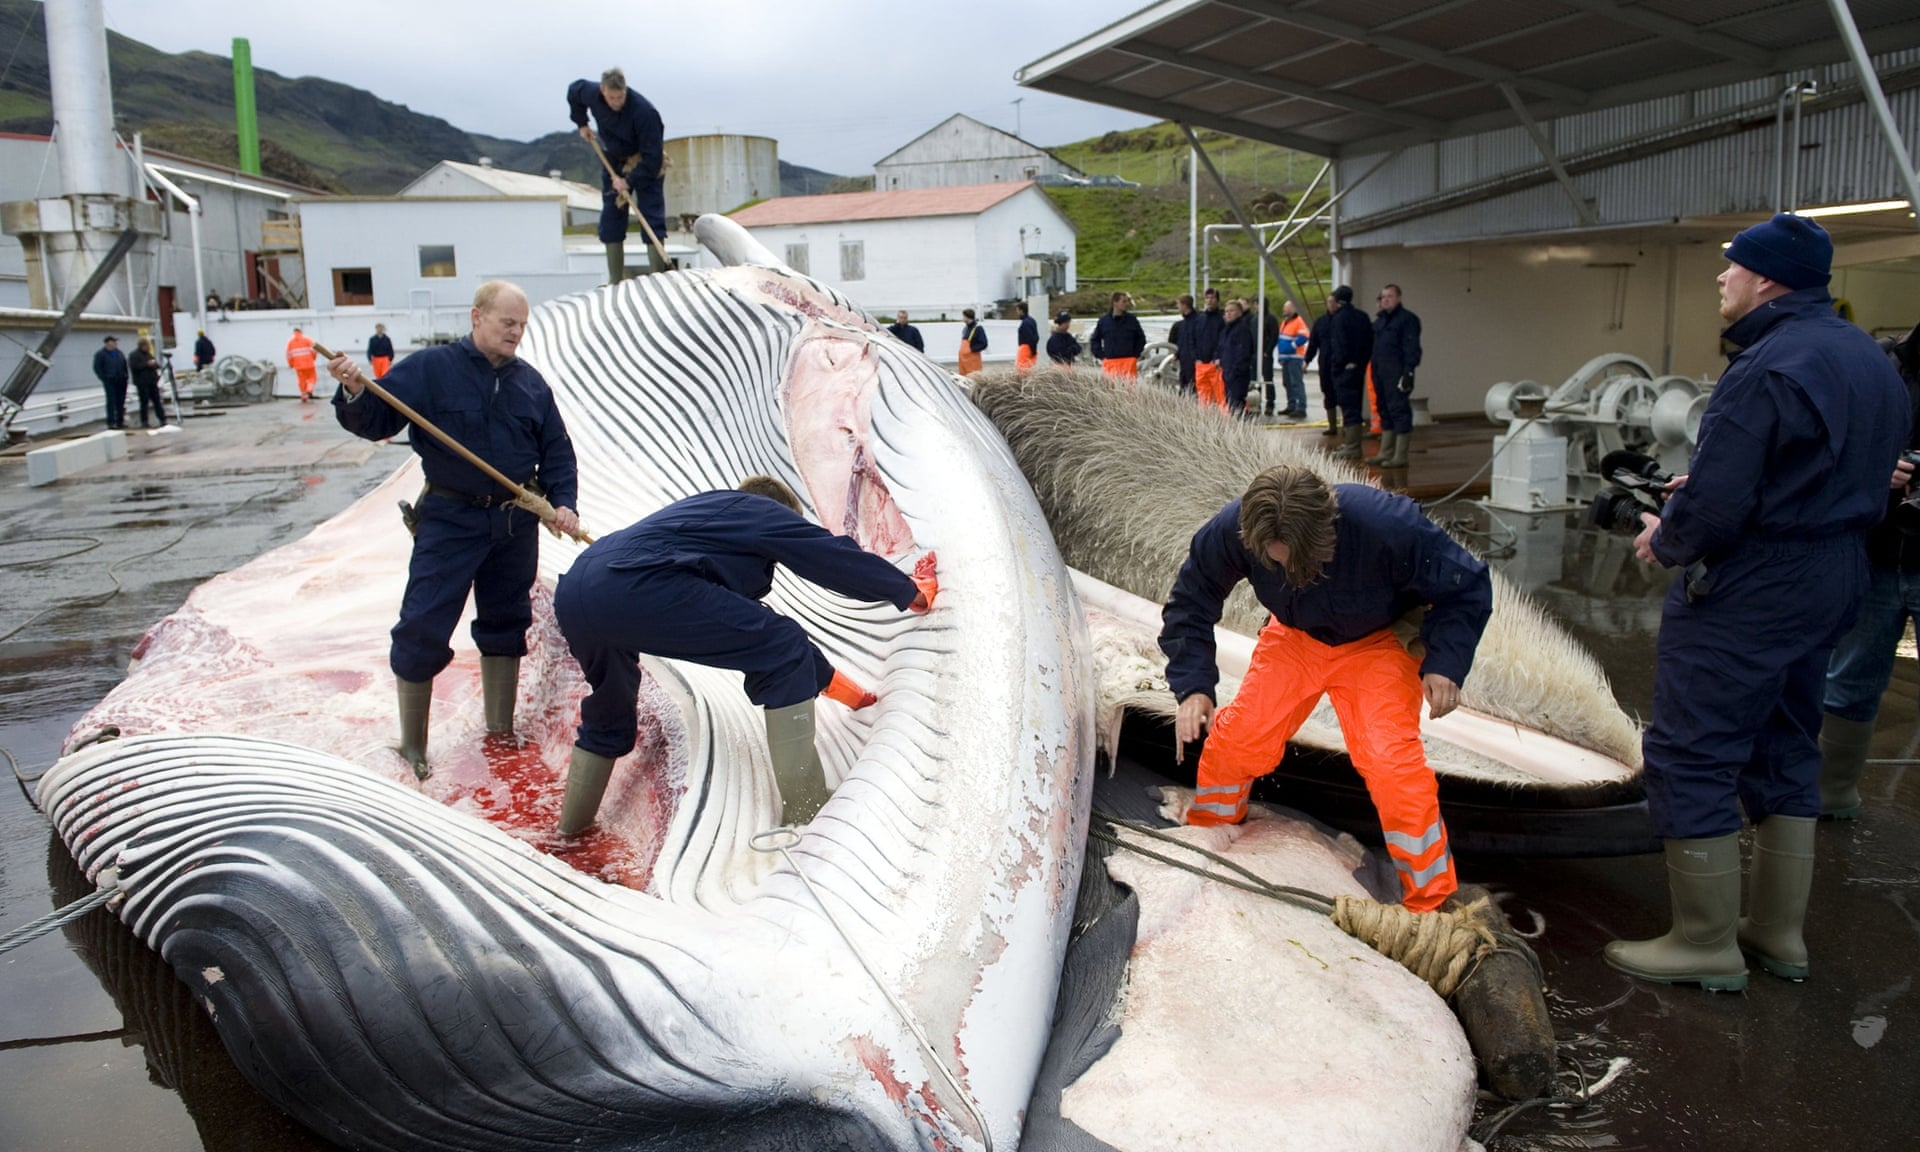 POLL: Should whaling by Iceland and Norway be banned?